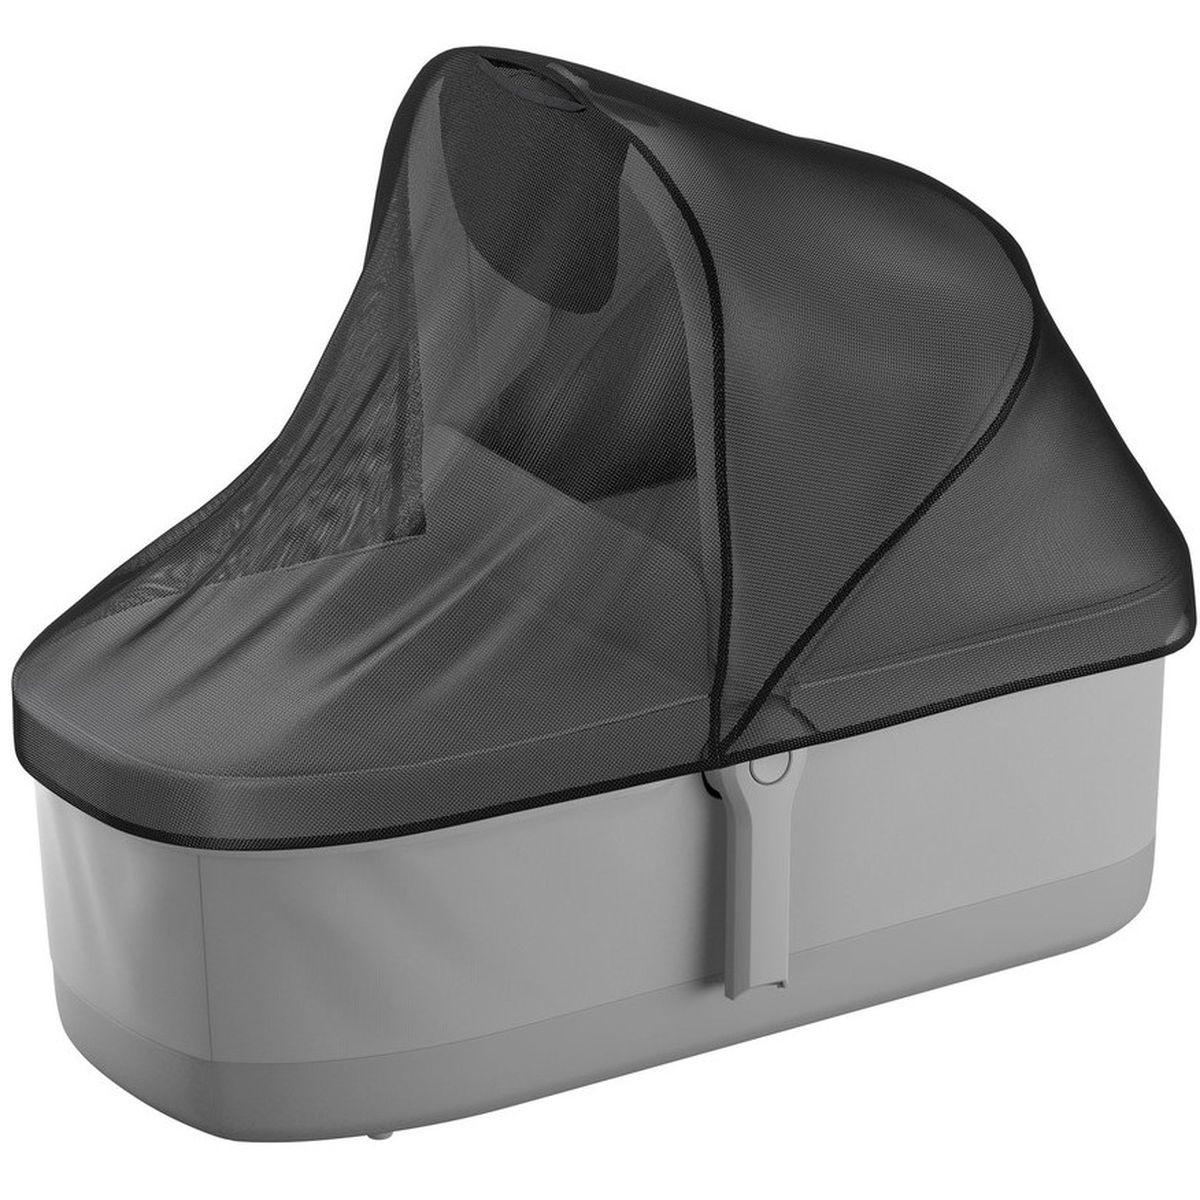 Moustiquaire nacelle SLEEK Thule black